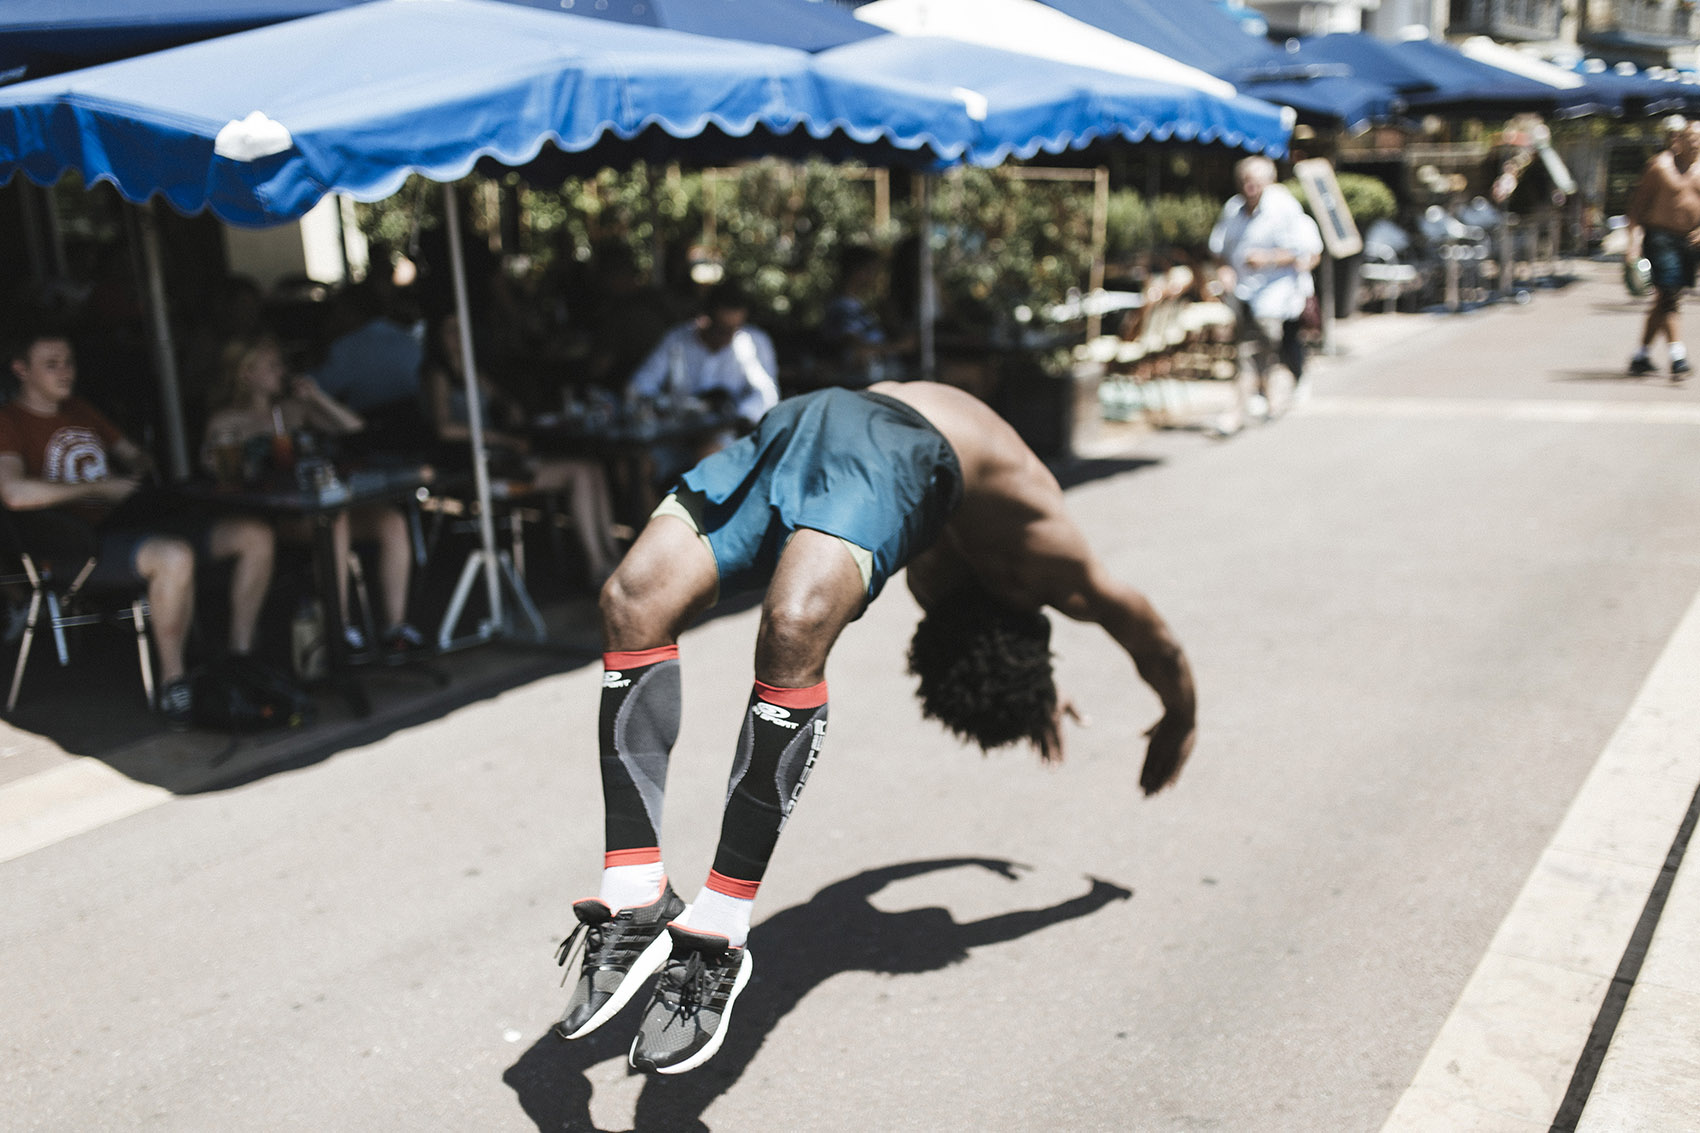 Capoeira dancers performs a backflip on the pavement.